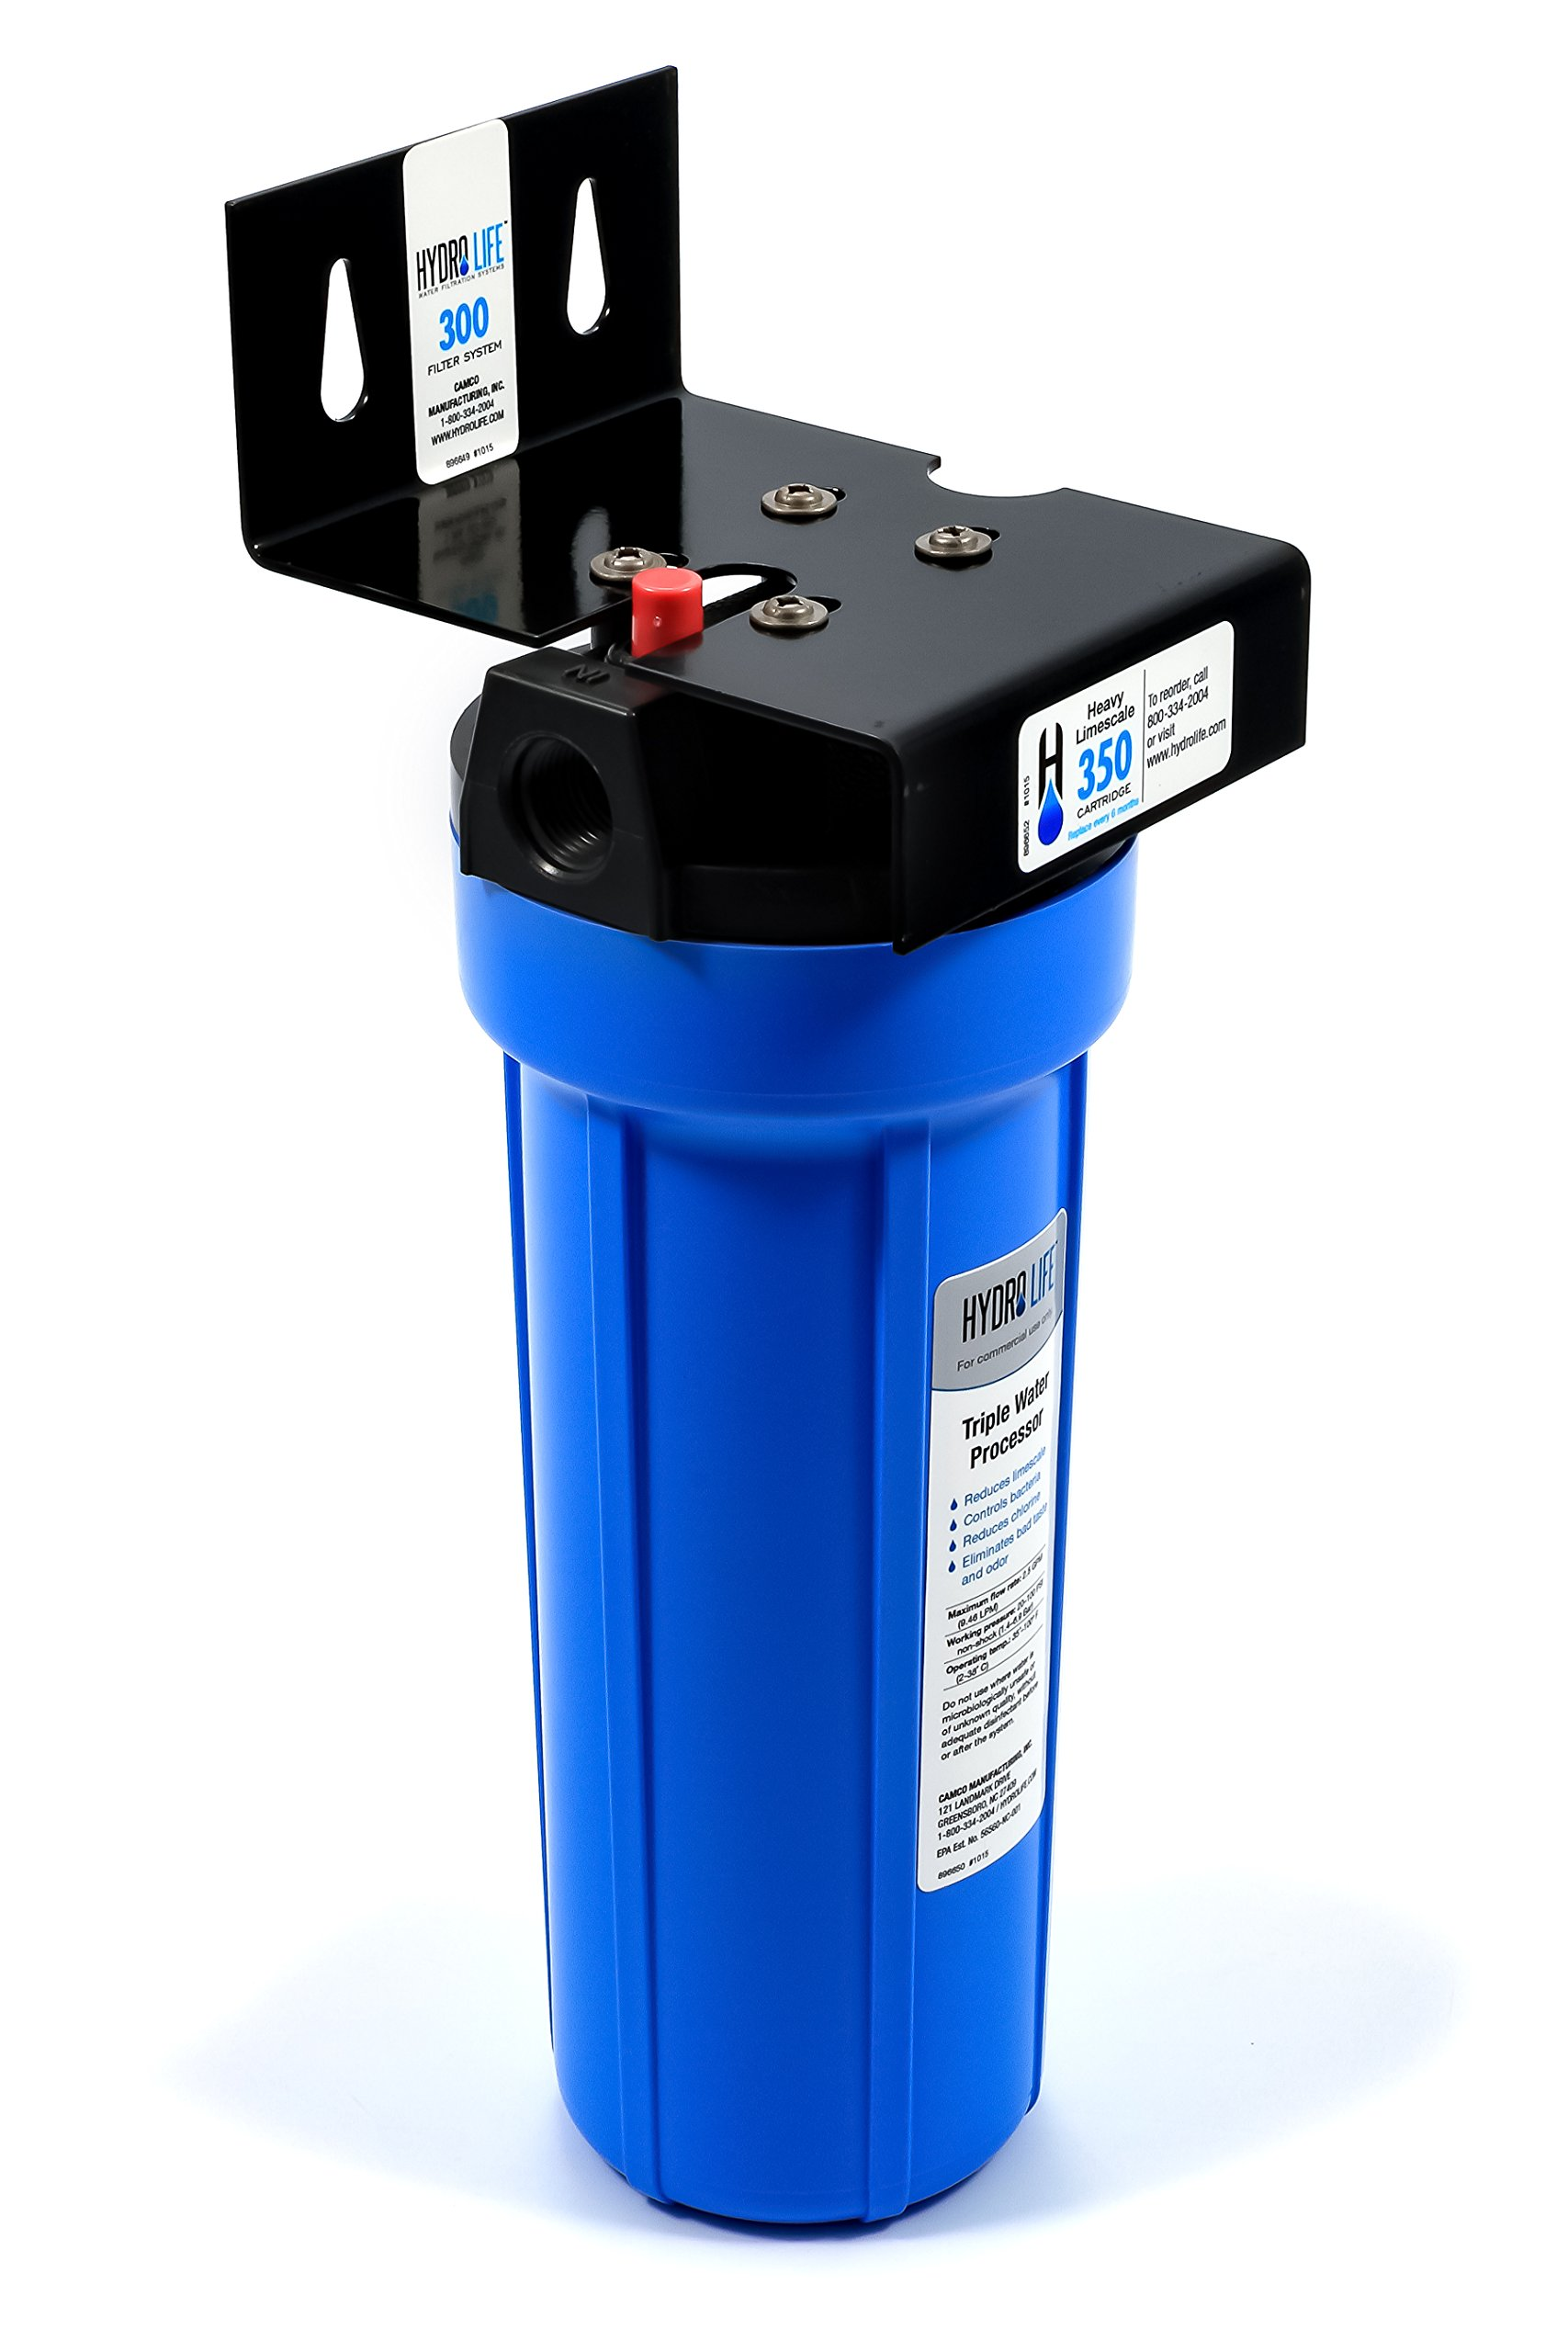 Hydro Life 52640 300 Series Model 300 Filtration System by Hydro Life (Image #6)